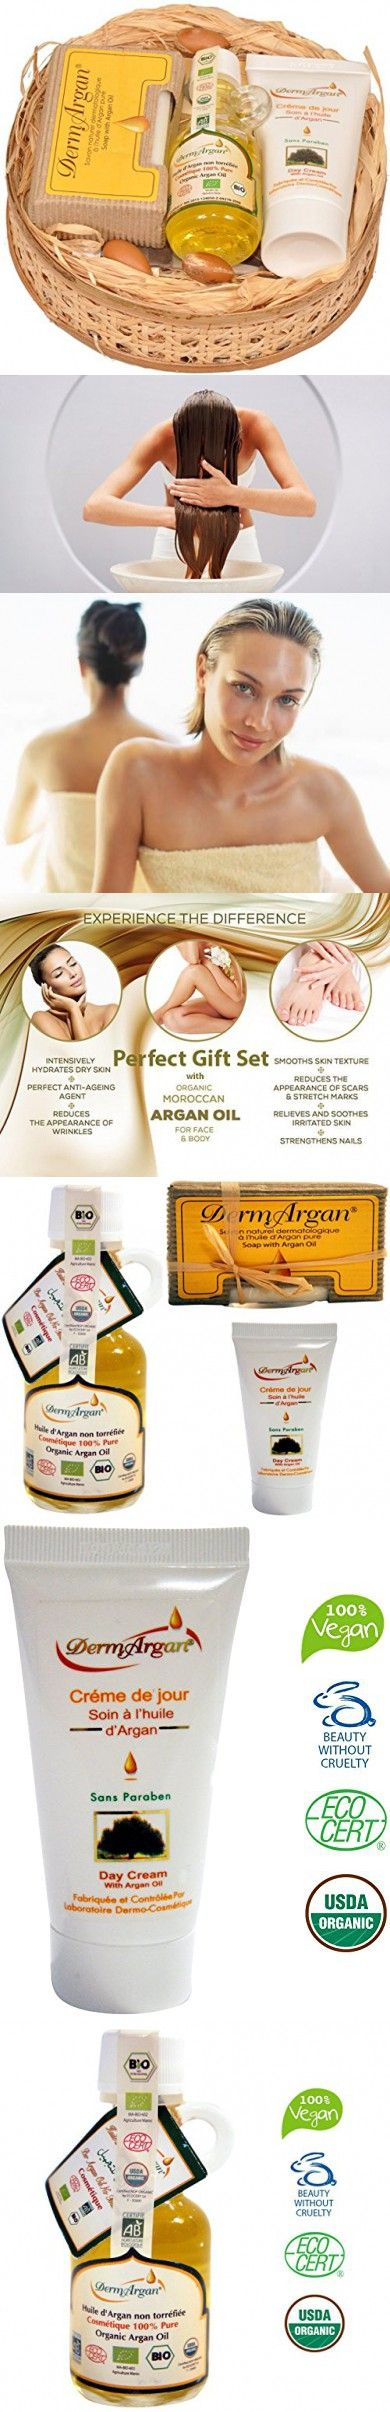 Beauty Gift Set Skincare for her and him 100% PURE & ORGANIC: Pure argan oil (40ml) + Argan Day cream (50ml) + Argan Soap (100g). SPECIALIST SKIN CARE PRODUCTS for face, body and hair